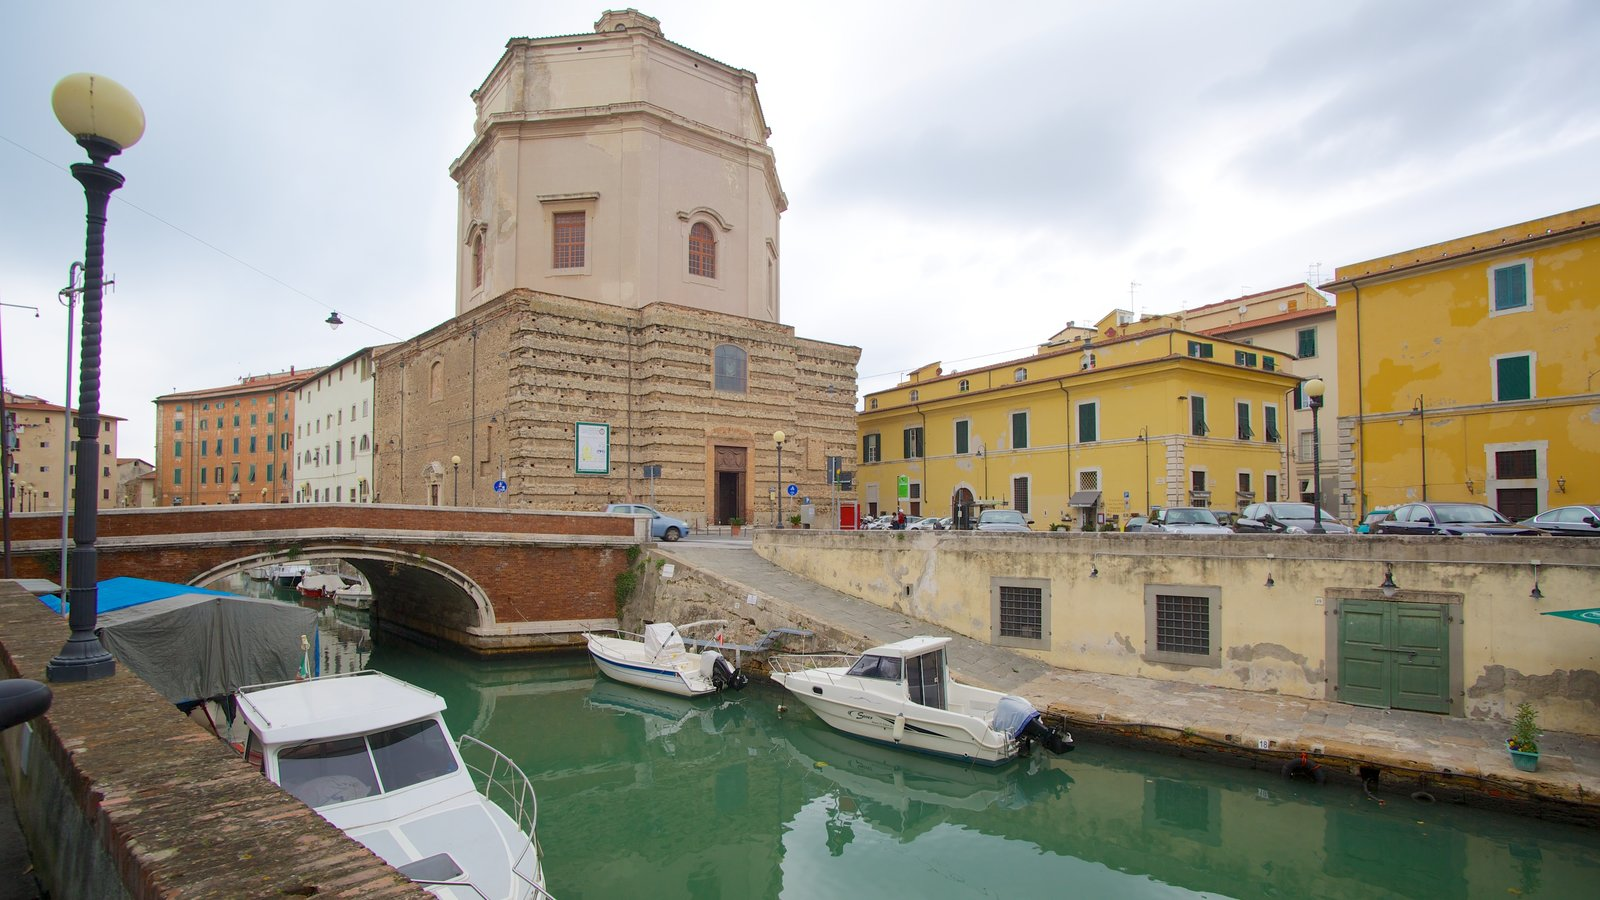 Chiesa di Santa Caterina featuring boating, heritage architecture and a river or creek